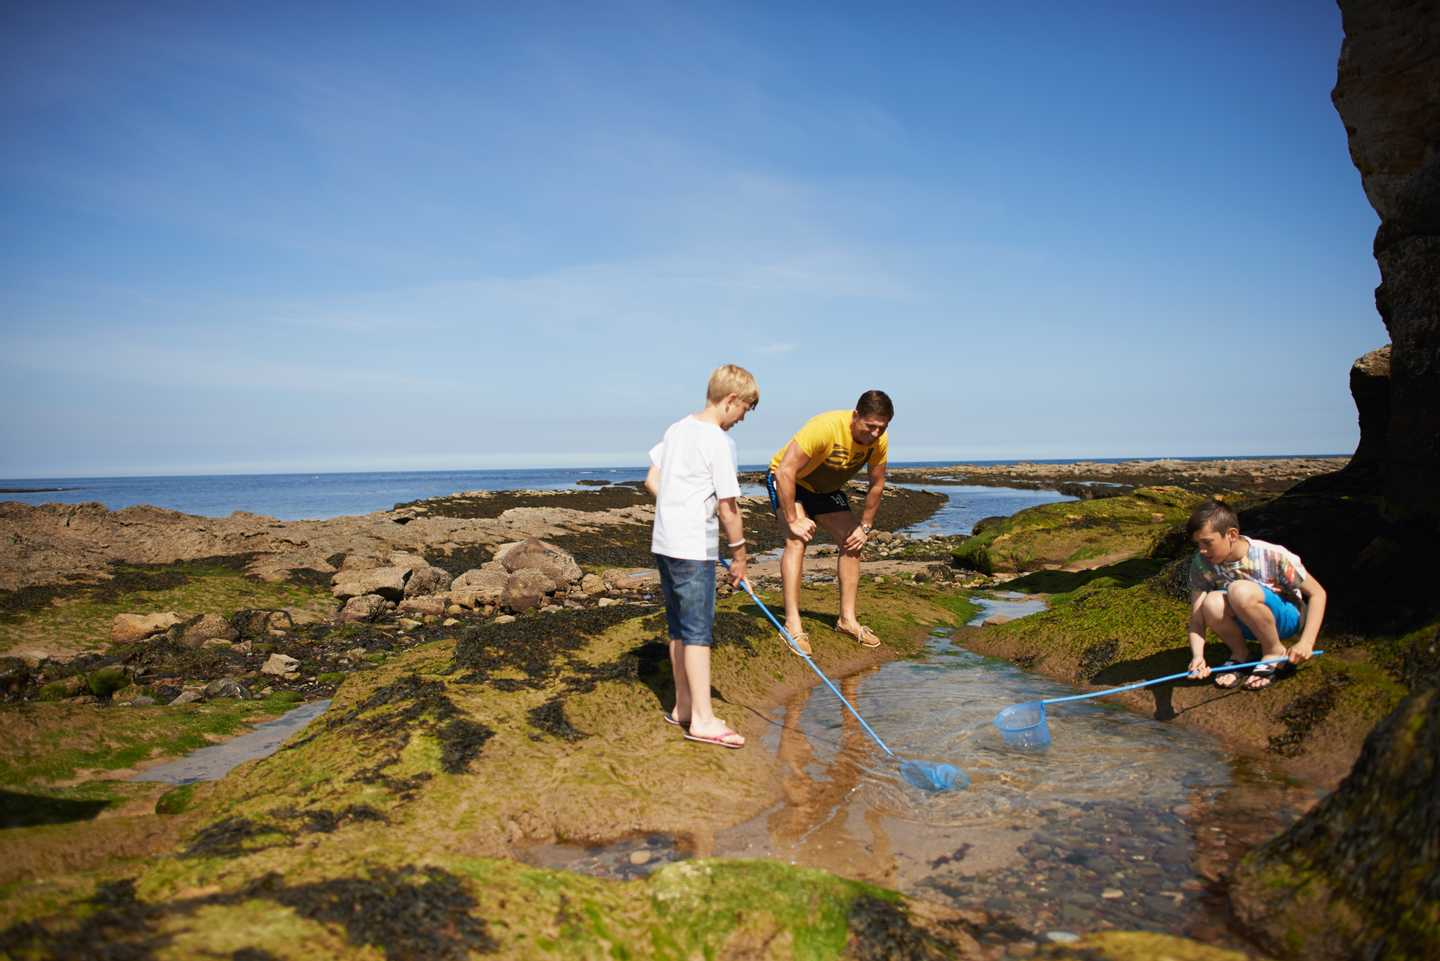 Kids and ranger studying rock pool